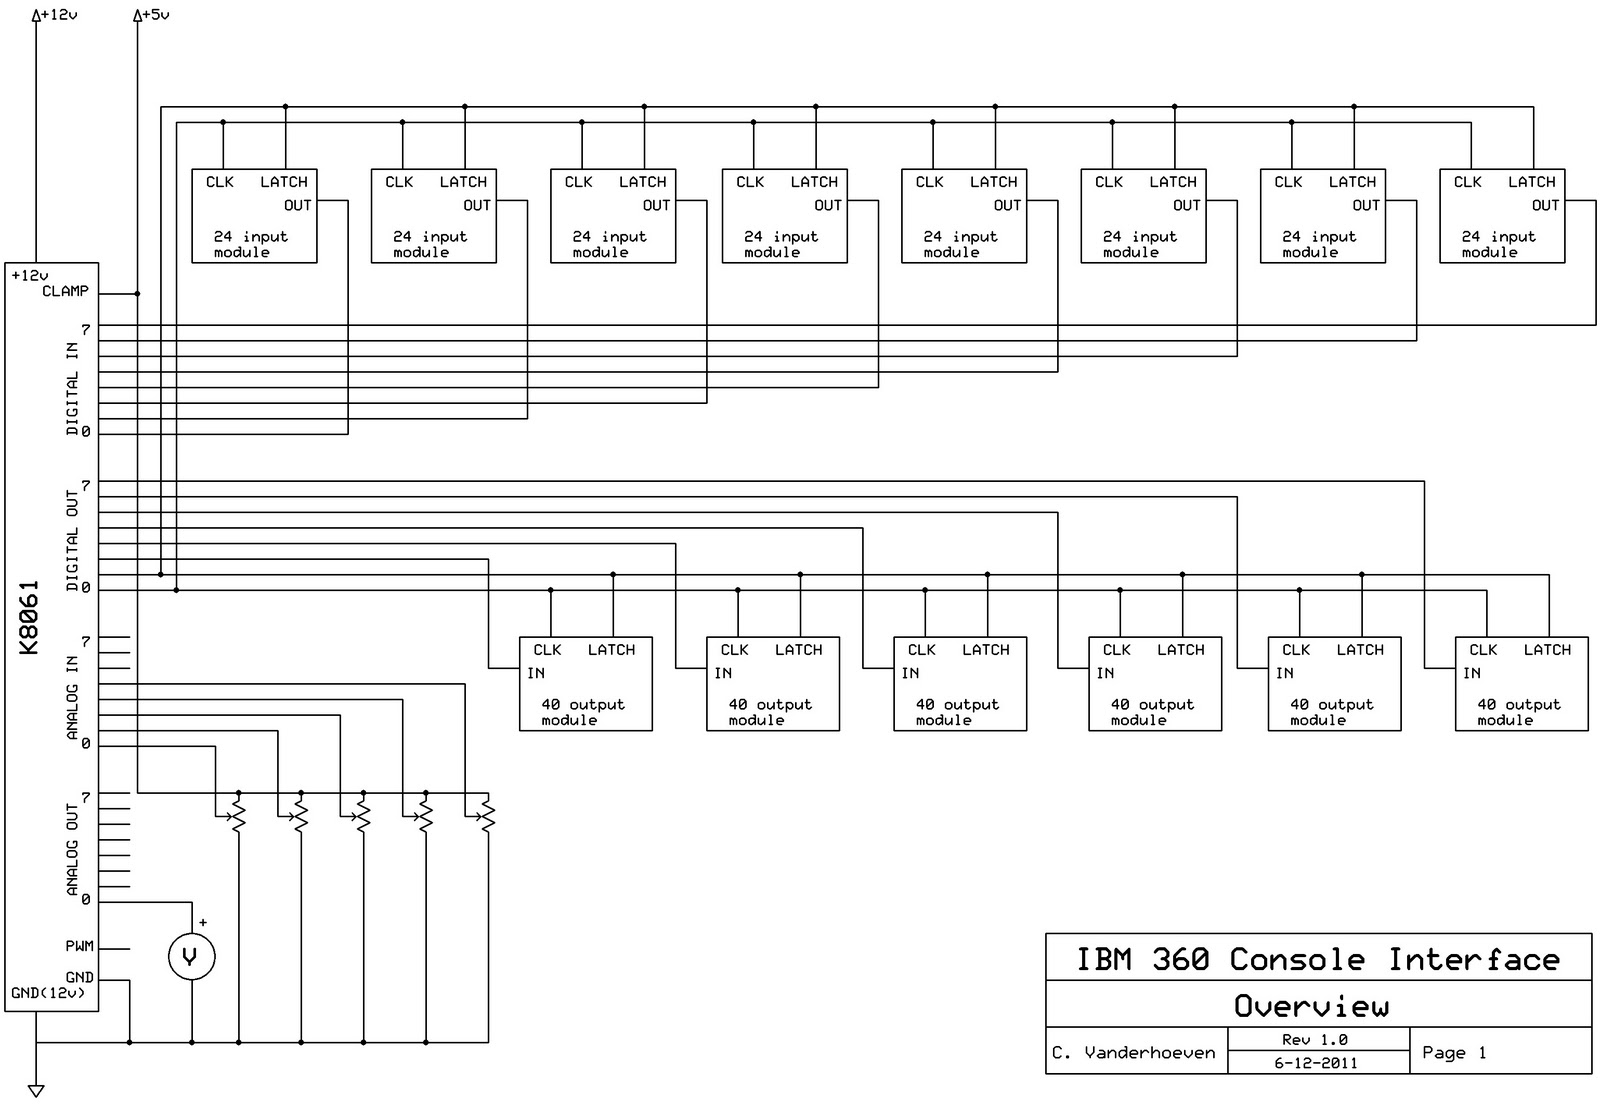 Schematics For Ibm 360 Console Panel Interface Vaxbarn Led Voltmeter Schematic Five Analog Inputs Are Used To Record The Setting Of Potentiometers And One Output Is Drive